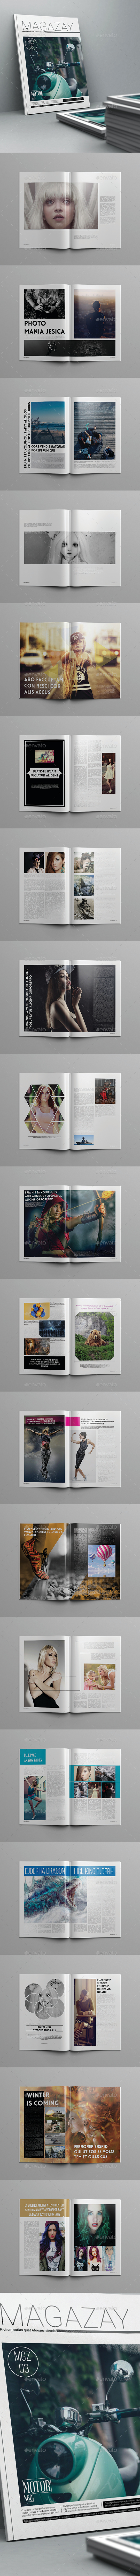 Magazine Template 40 Pages